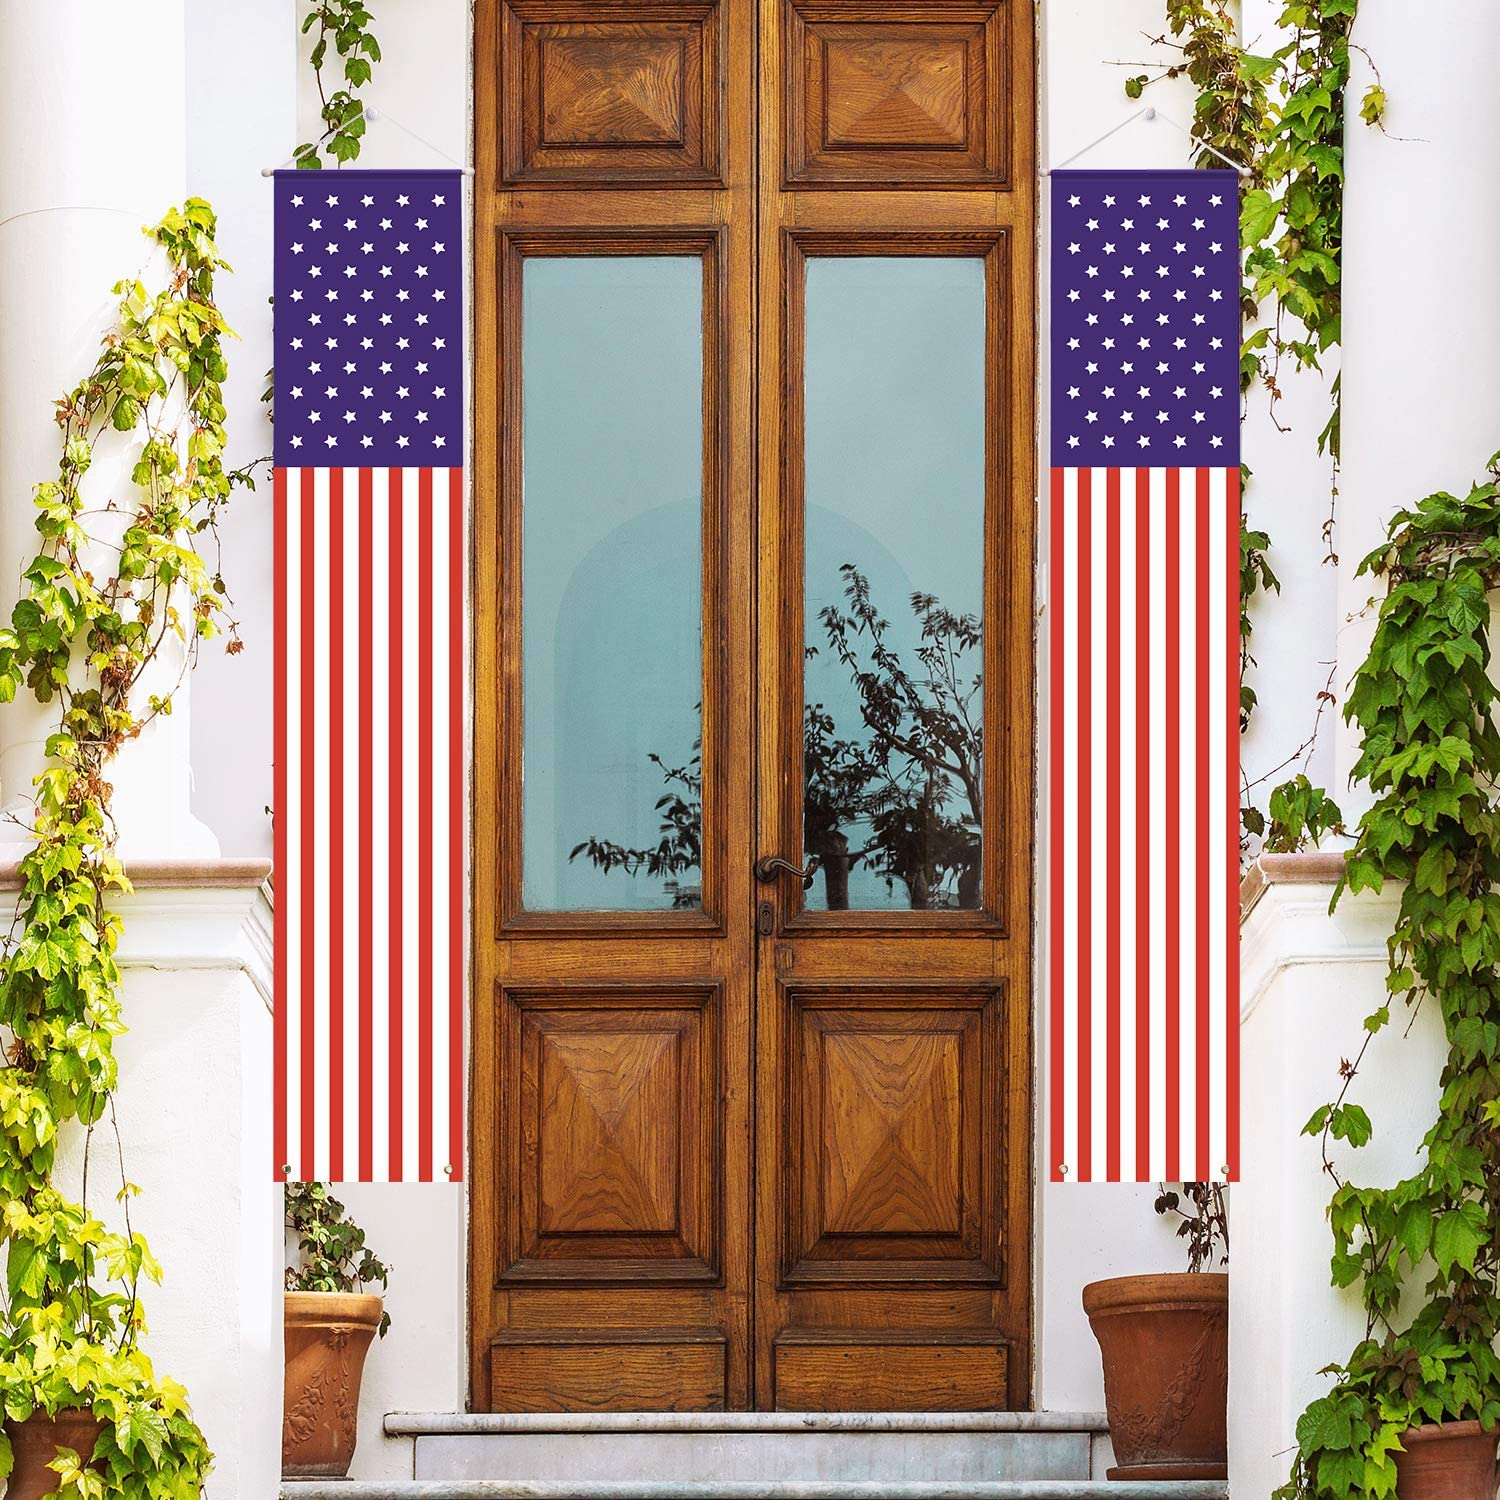 Koopro National Flag Day Decoration Porch Sign Labor Day Hanging Banner Vertical The Stars and The Stripes American Flag for Front Door Yard Indoor Outdoor Decor Memorial Day Independence Day